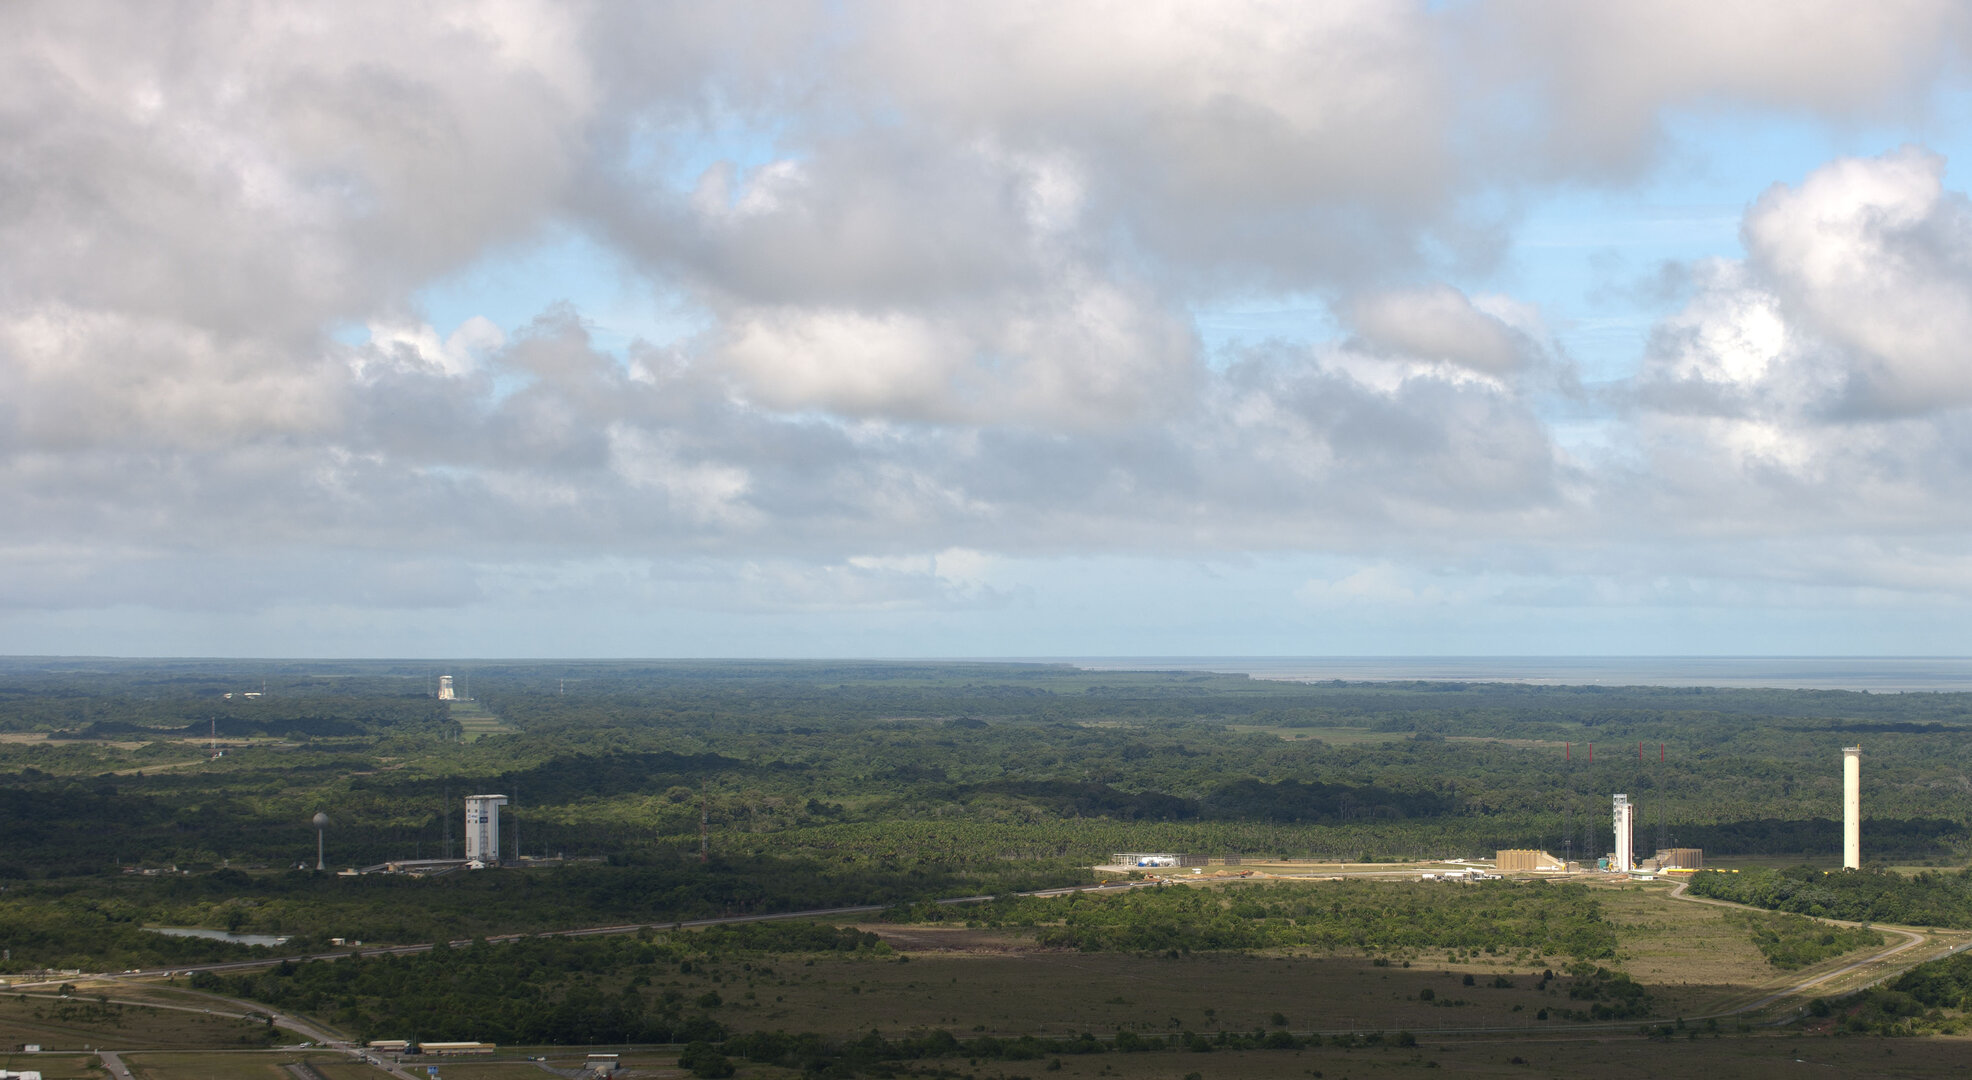 Ariane, Soyuz and Vega launch sites at Europe's Spaceport